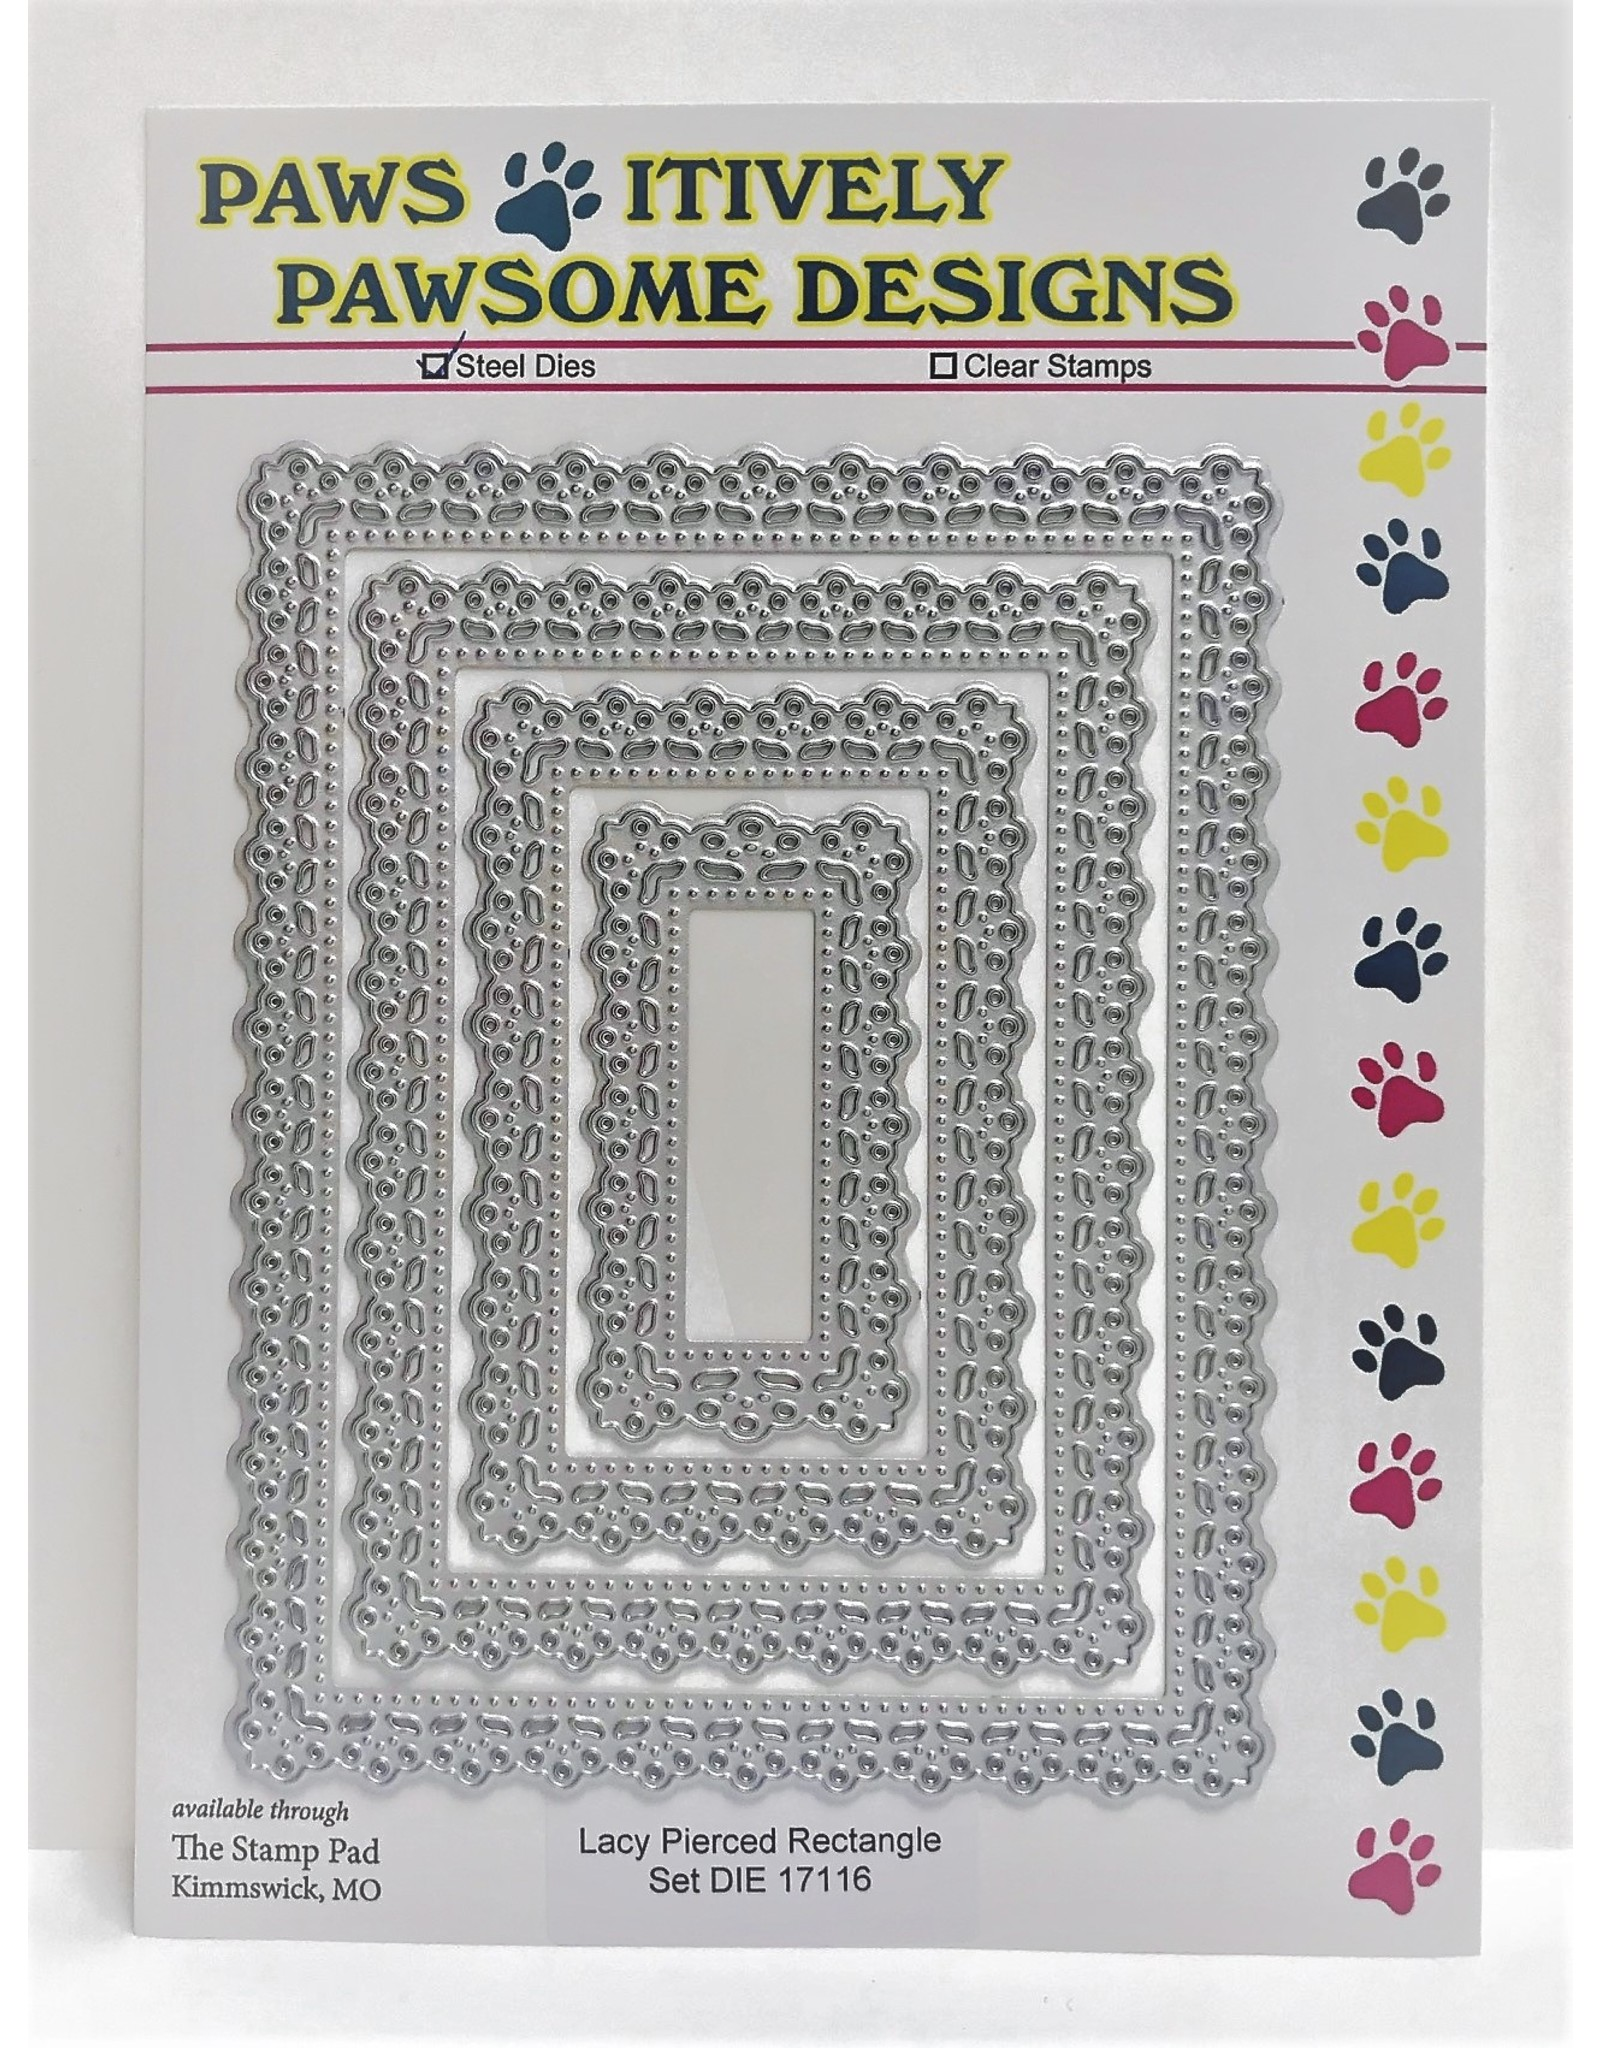 Paws-Itively Pawsome Designs Lacy Pierced Rectangle Set - Die